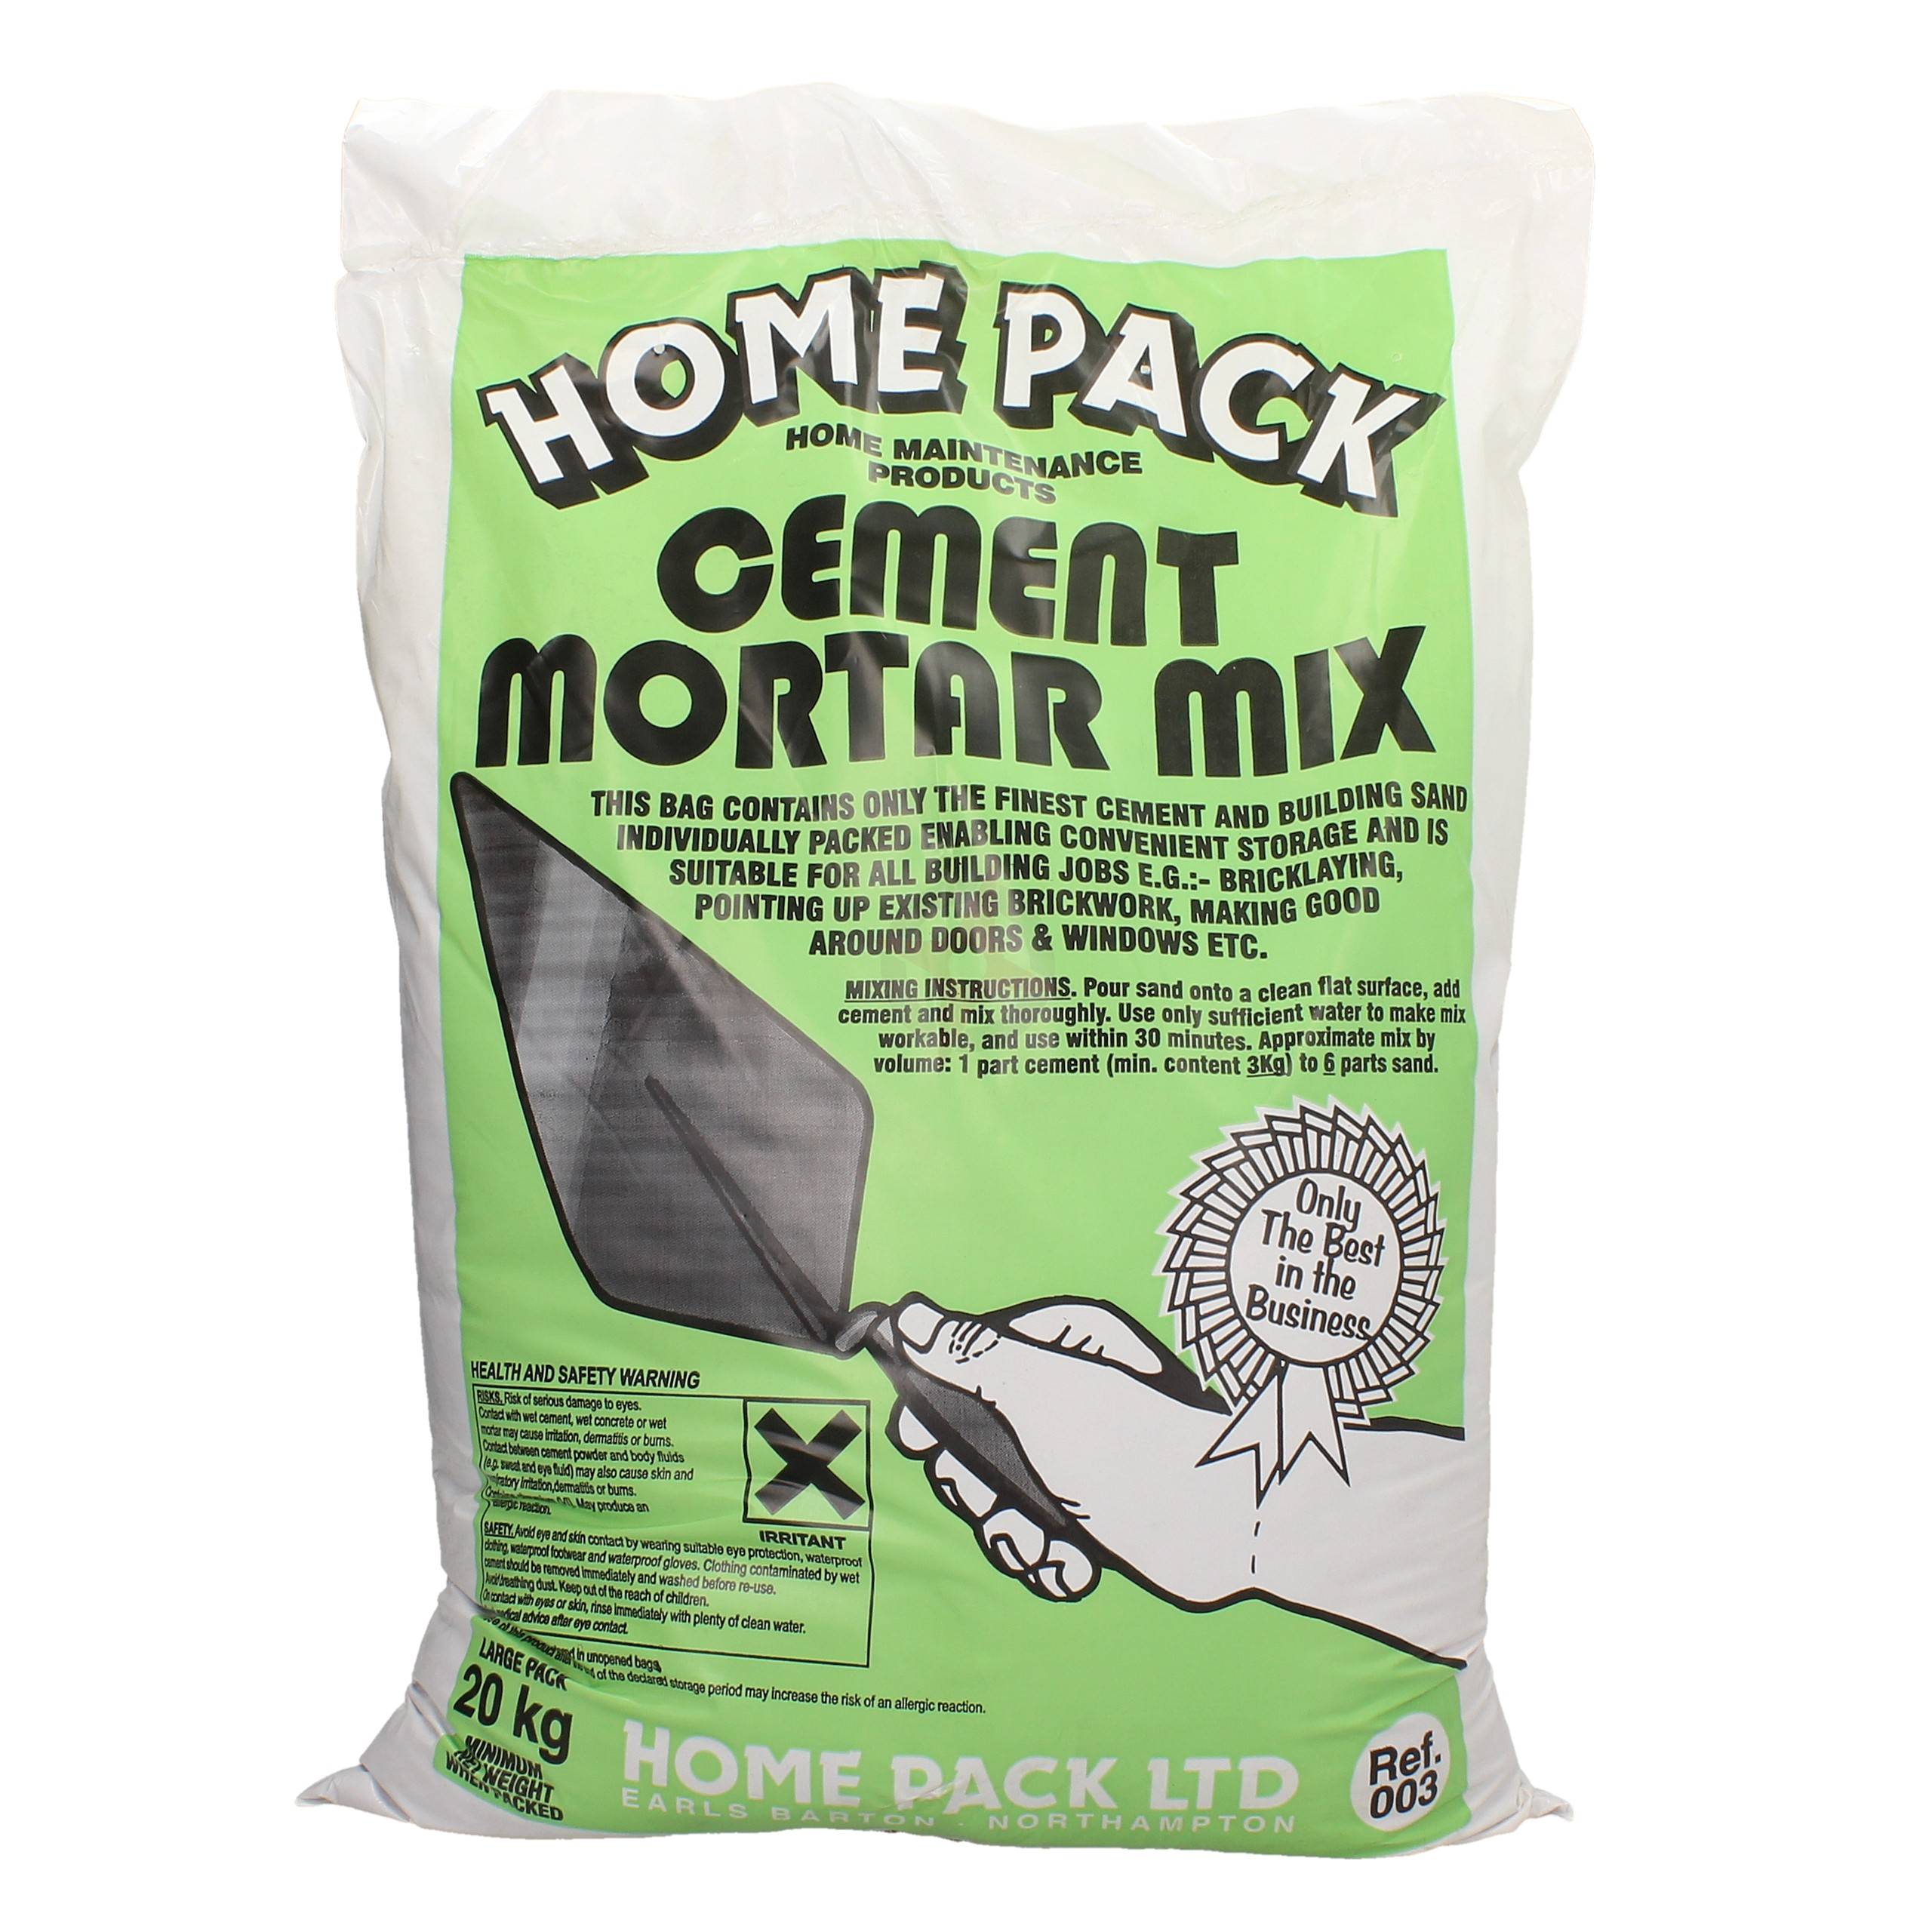 Home Pack 20kg Cement Mortar Mix